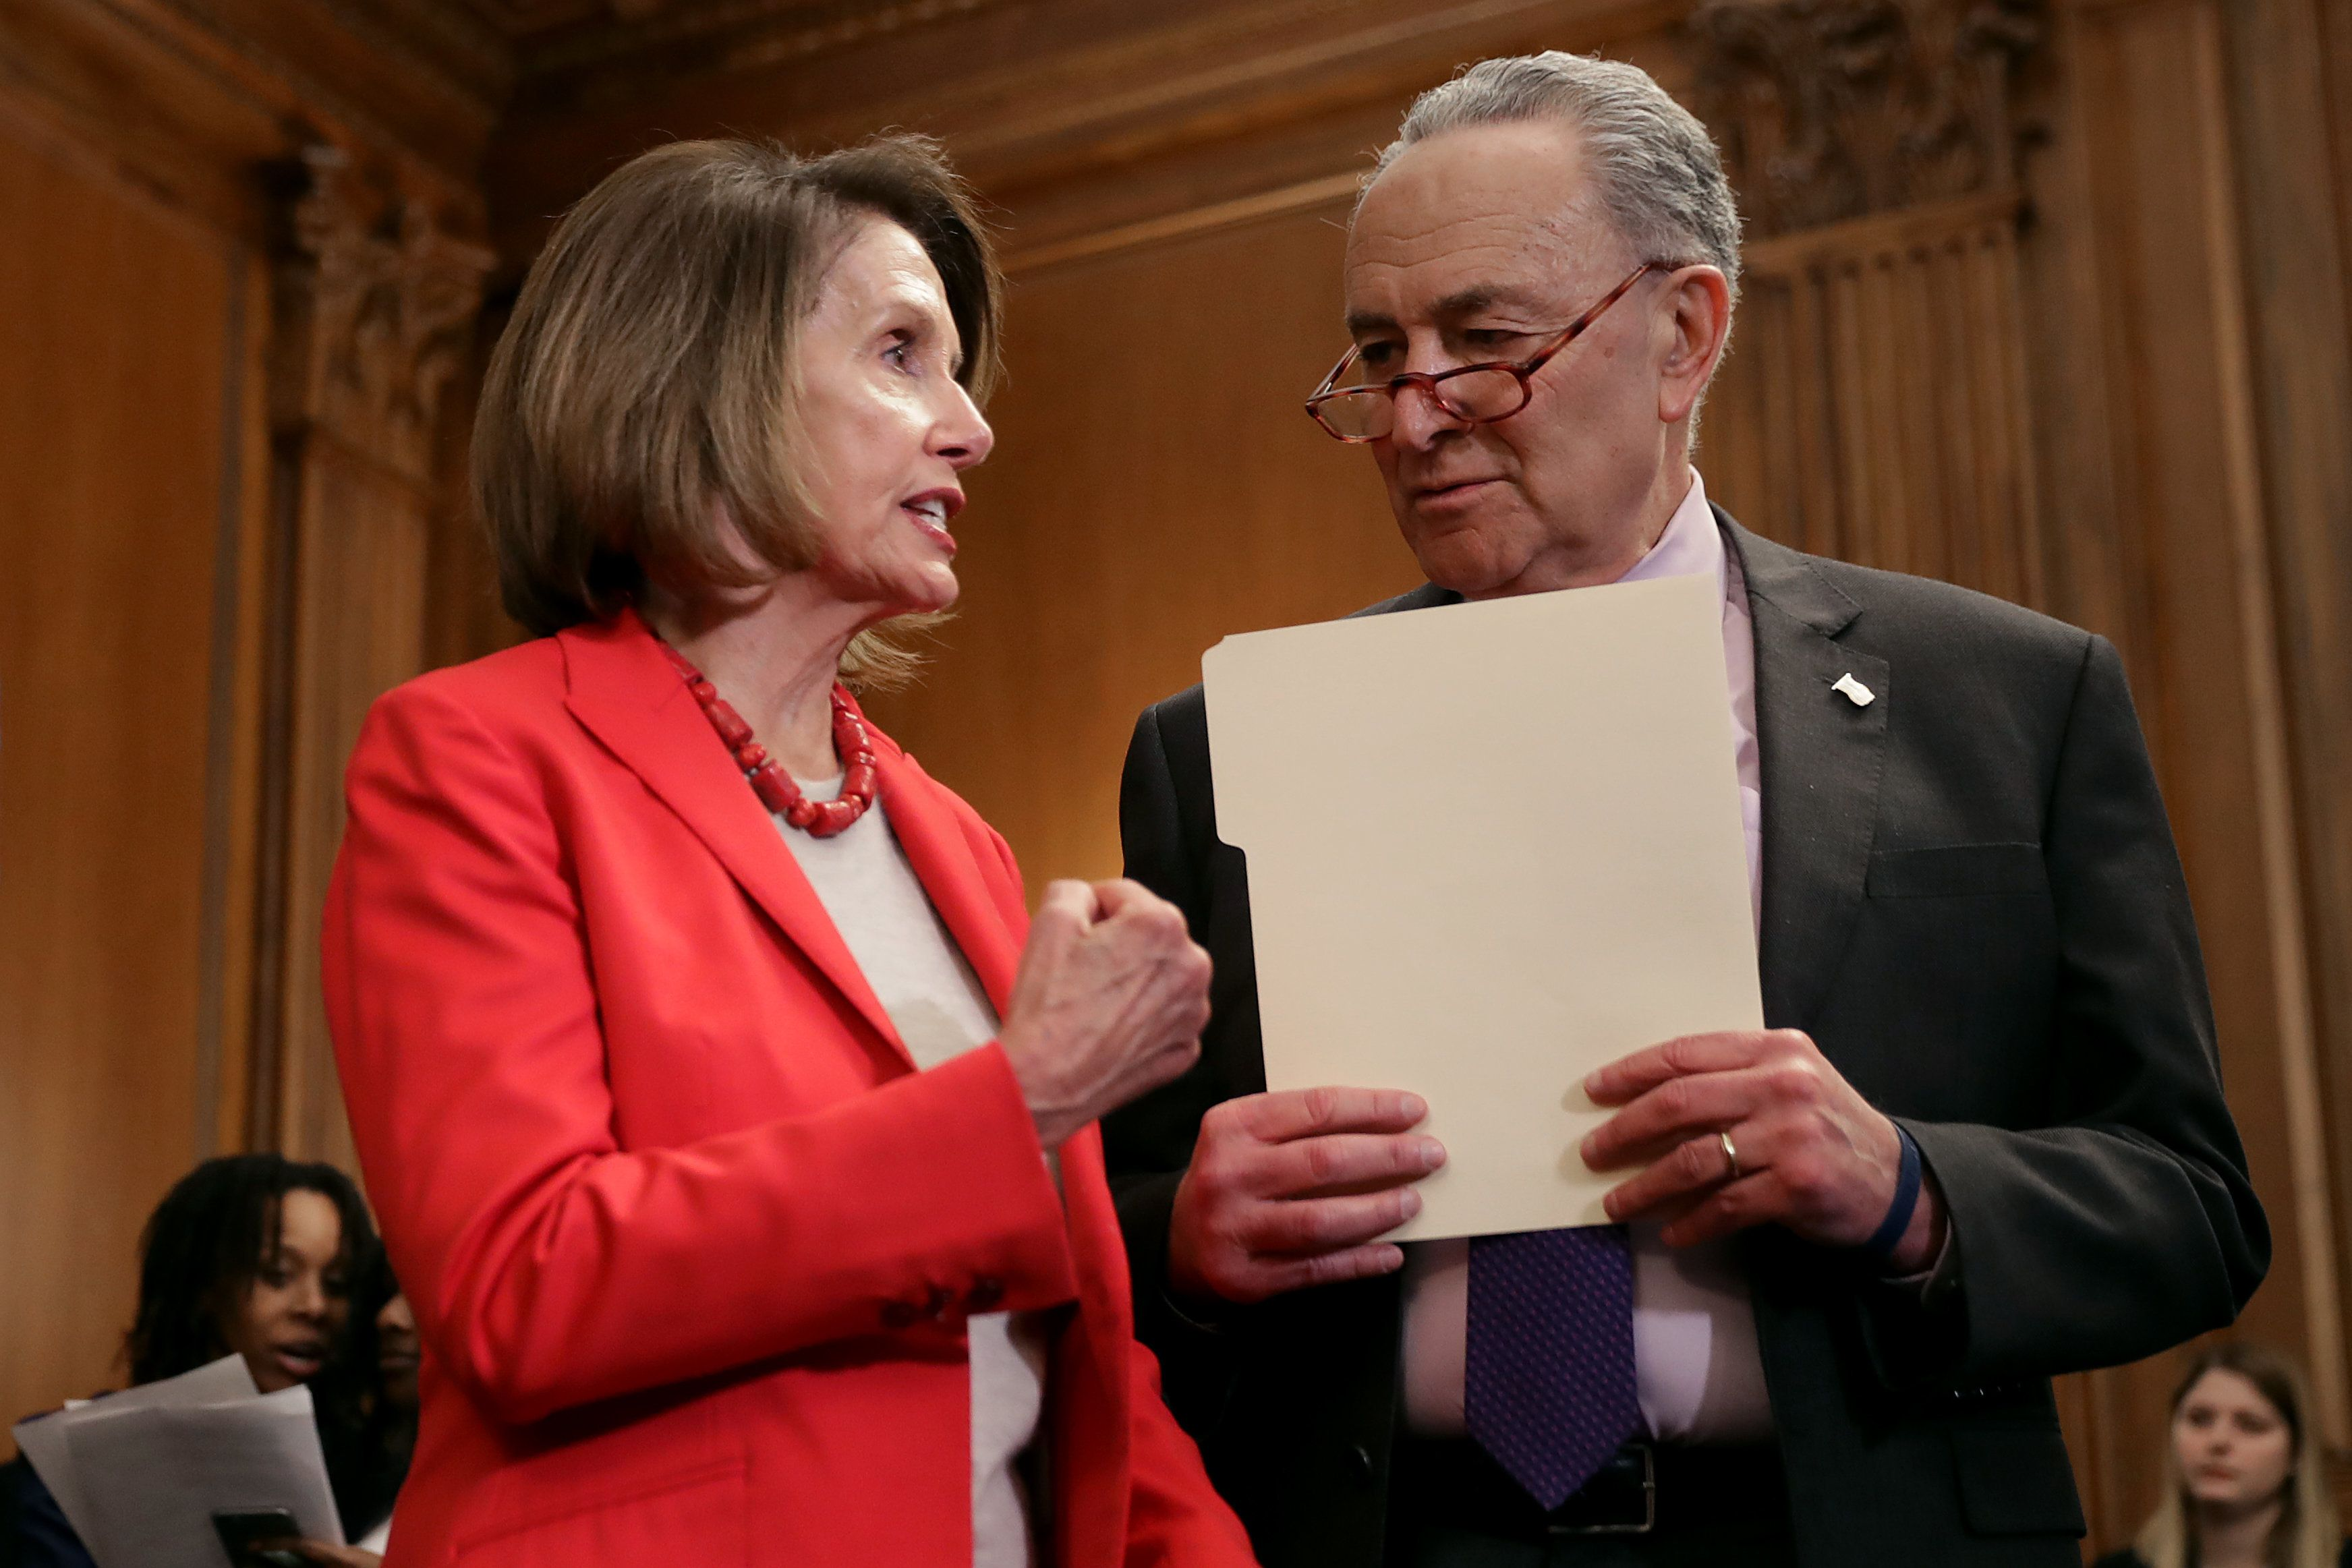 WASHINGTON, DC - JANUARY 16: Speaker of the House Nancy Pelosi (D-CA) (L) and Senate Minority Leader Charles Schumer (D-NY) talk during an event to introduce the Raise The Wage Act in the Rayburn Room at the U.S. Capitol January 16, 2019 in Washington, DC. The proposed legislation, which will gradually raise the minimum wage to $15 by 2024, is unlikely to pass in the Republican-controlled Senate. (Photo by Chip Somodevilla/Getty Images)